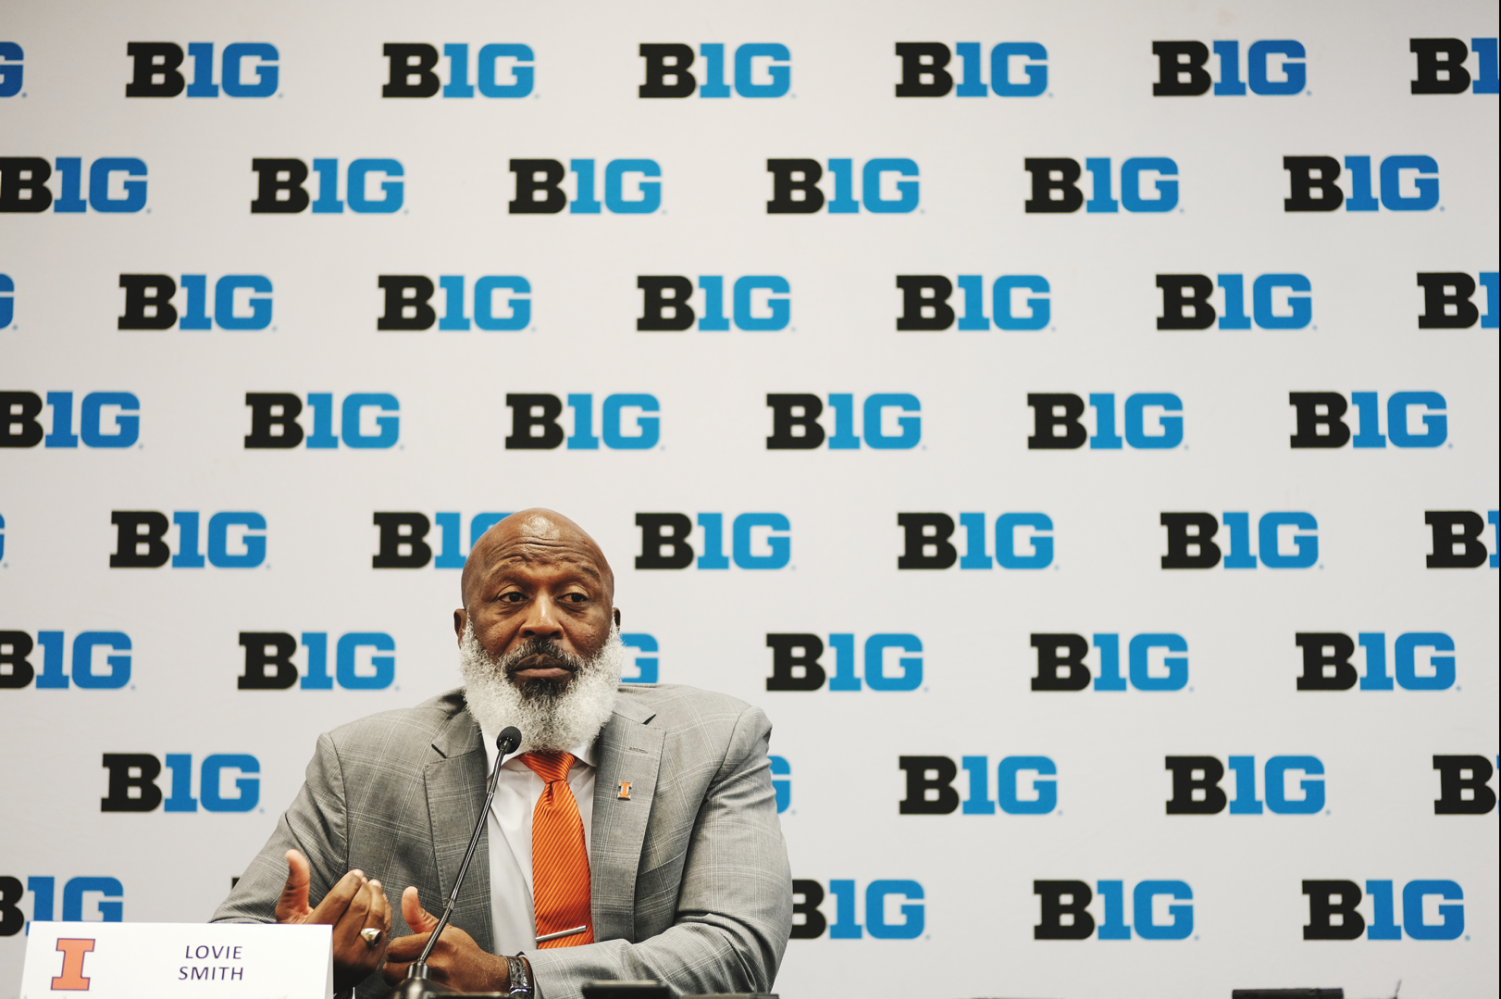 Lovie Smith answering questions at the individual podiums at the Hilton on Michigan Ave at Big Ten Media Days on Thursday/